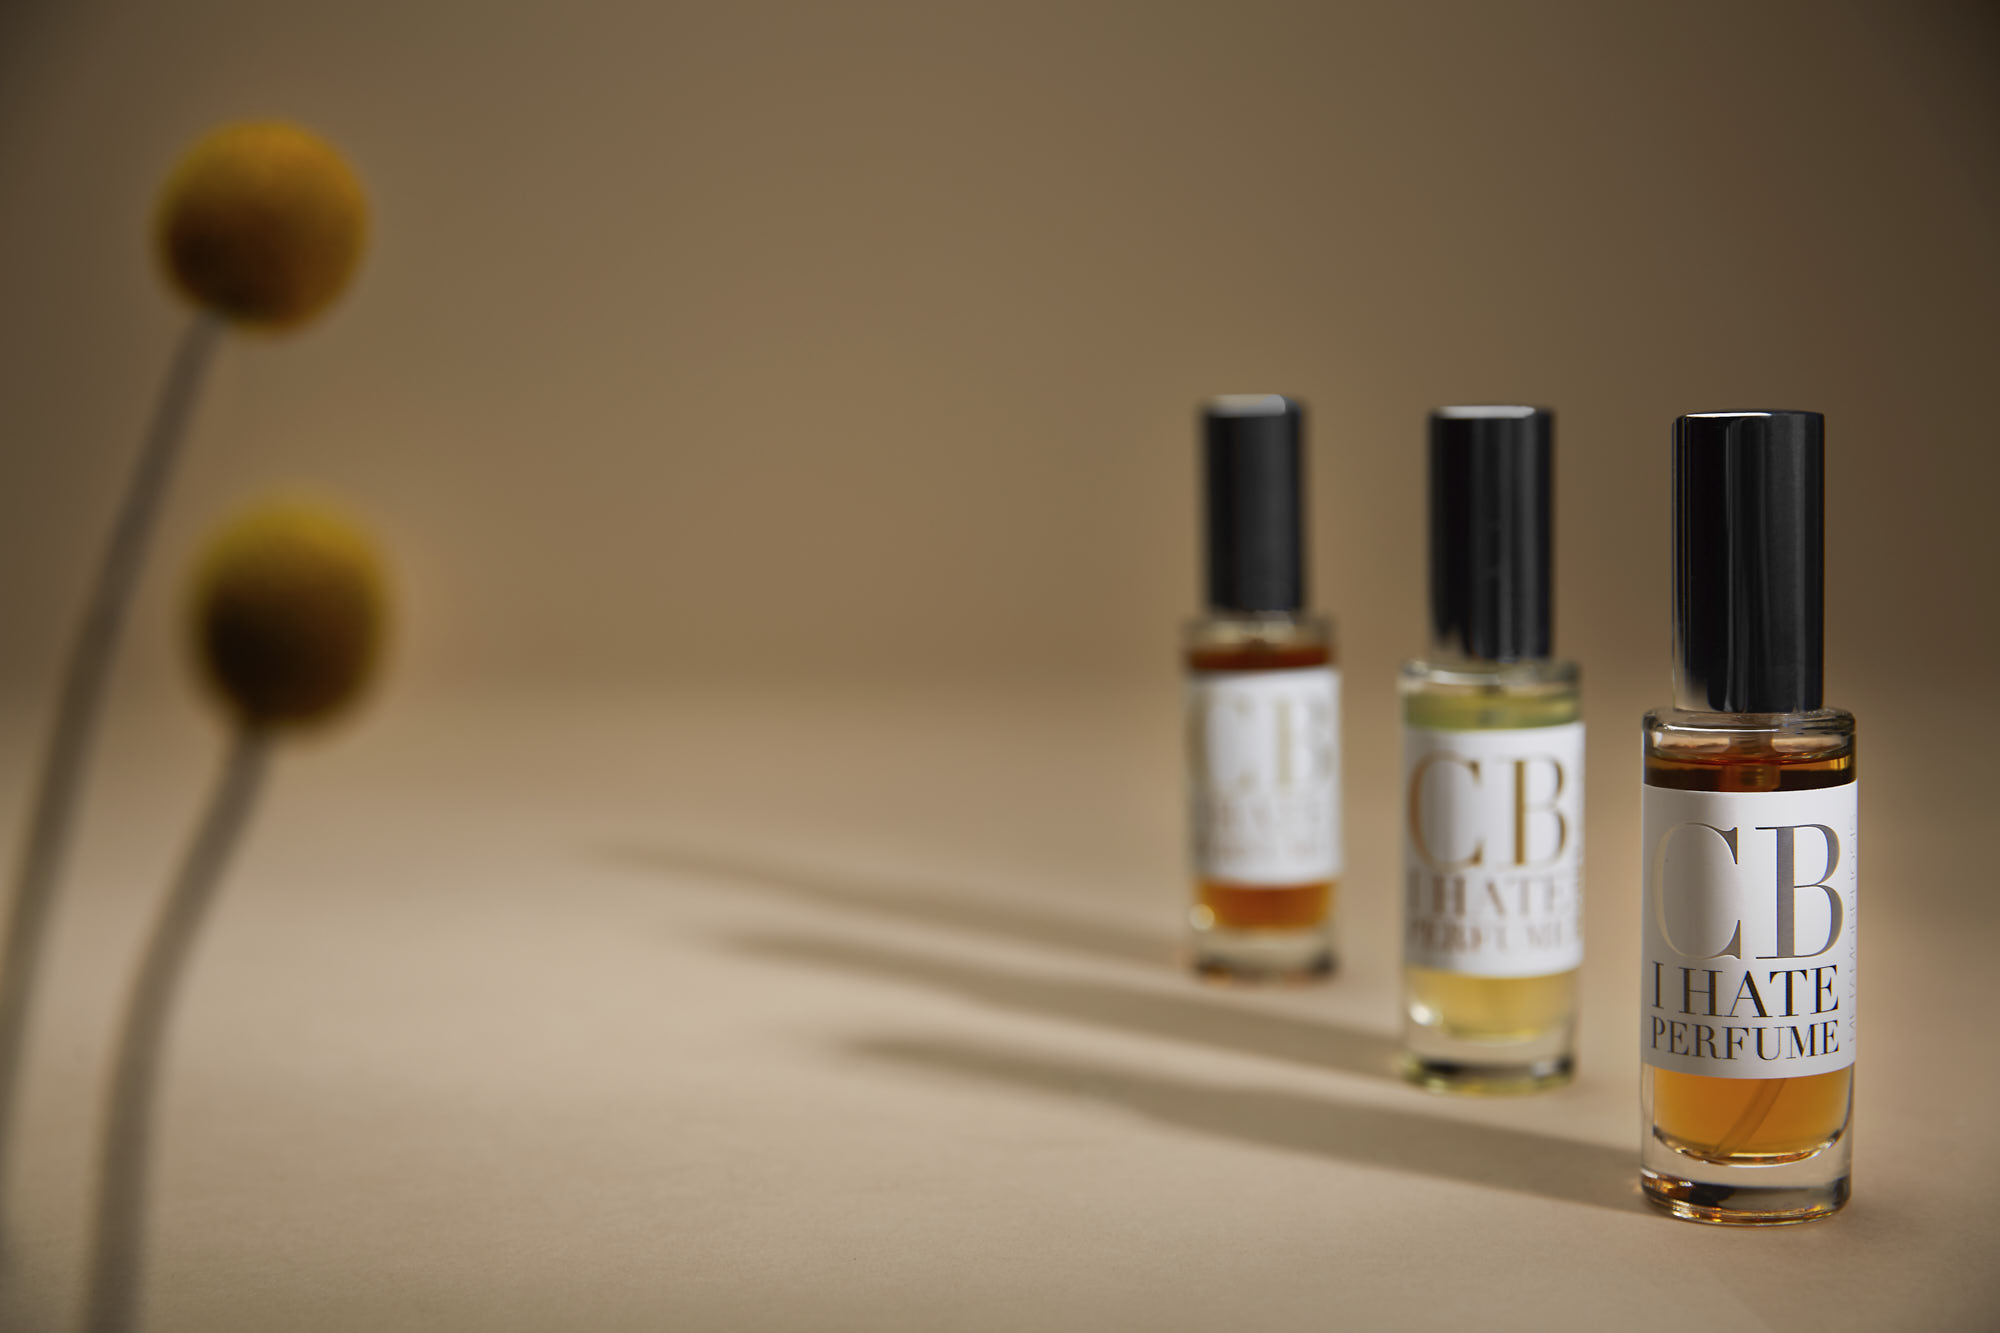 CB I Hate Perfume - ....Christopher Brosius, the famous nose who create CB I Hate Perfumeis based in the heart of Brooklyn, New York. He is a born artist, considered to be the most innovative perfumer of the 21 st century. He describes his work in three words,